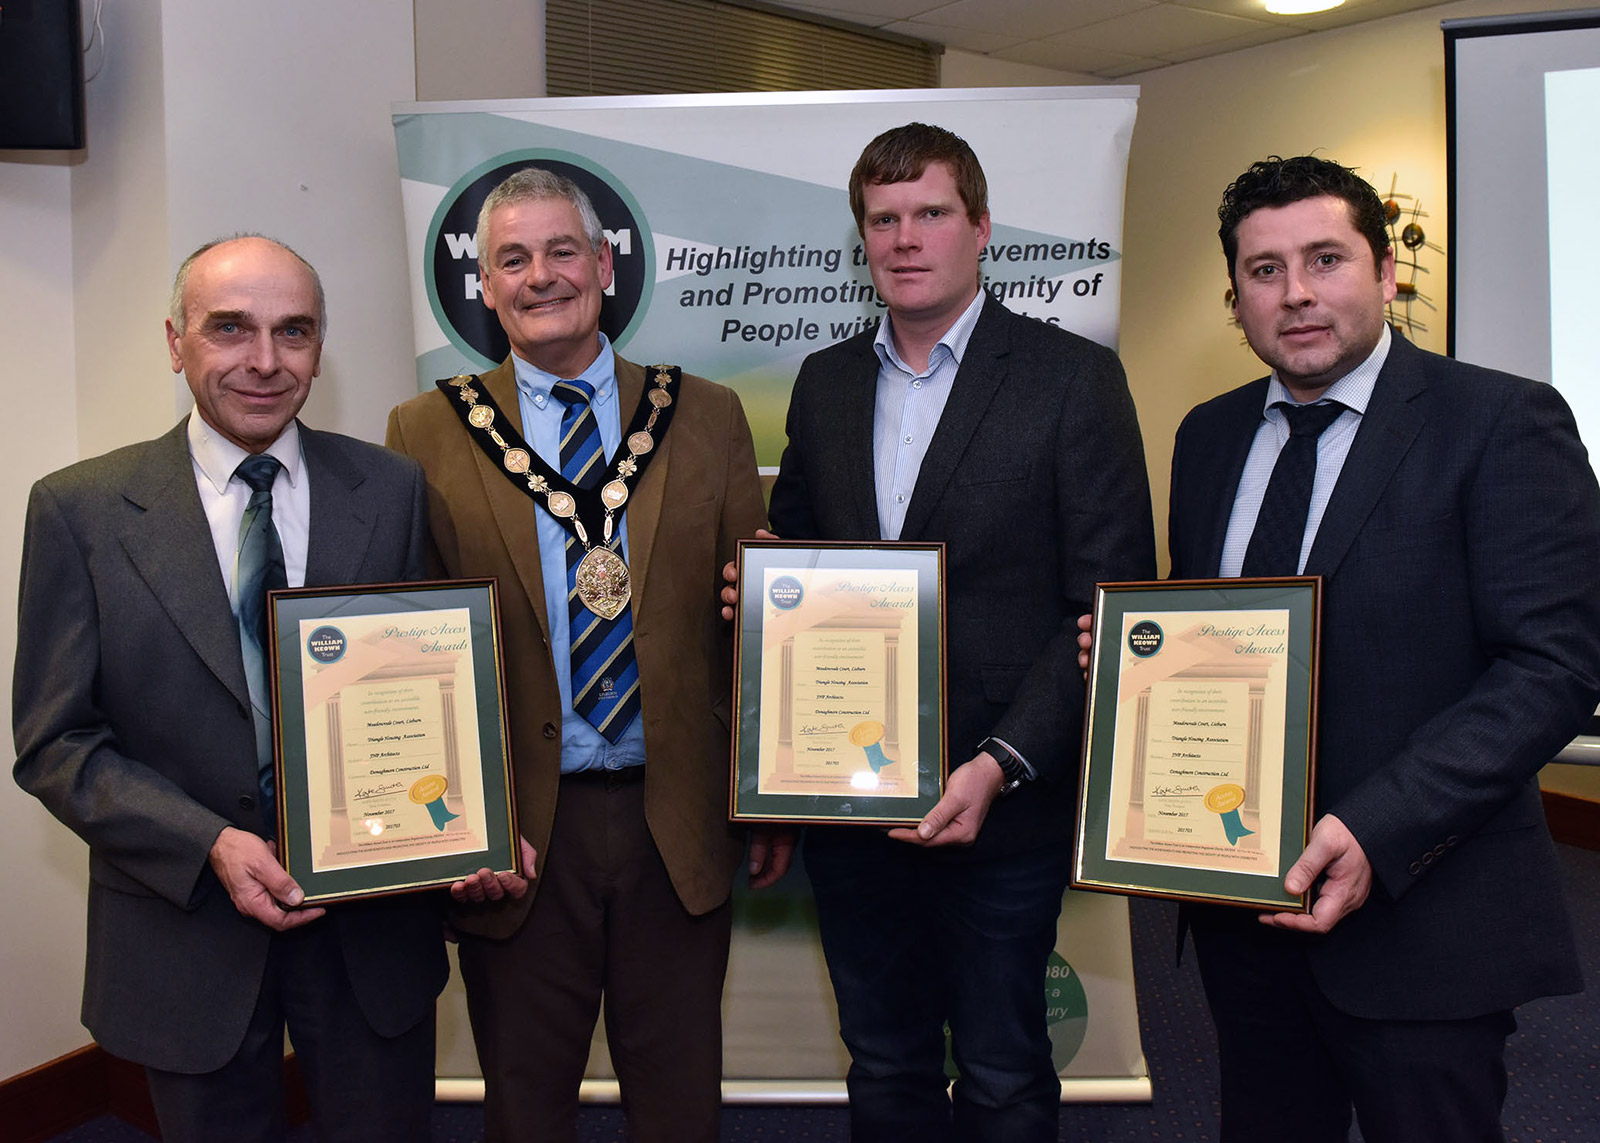 Meadowvale Court presented with Prestige Access Award by William Keown Trust